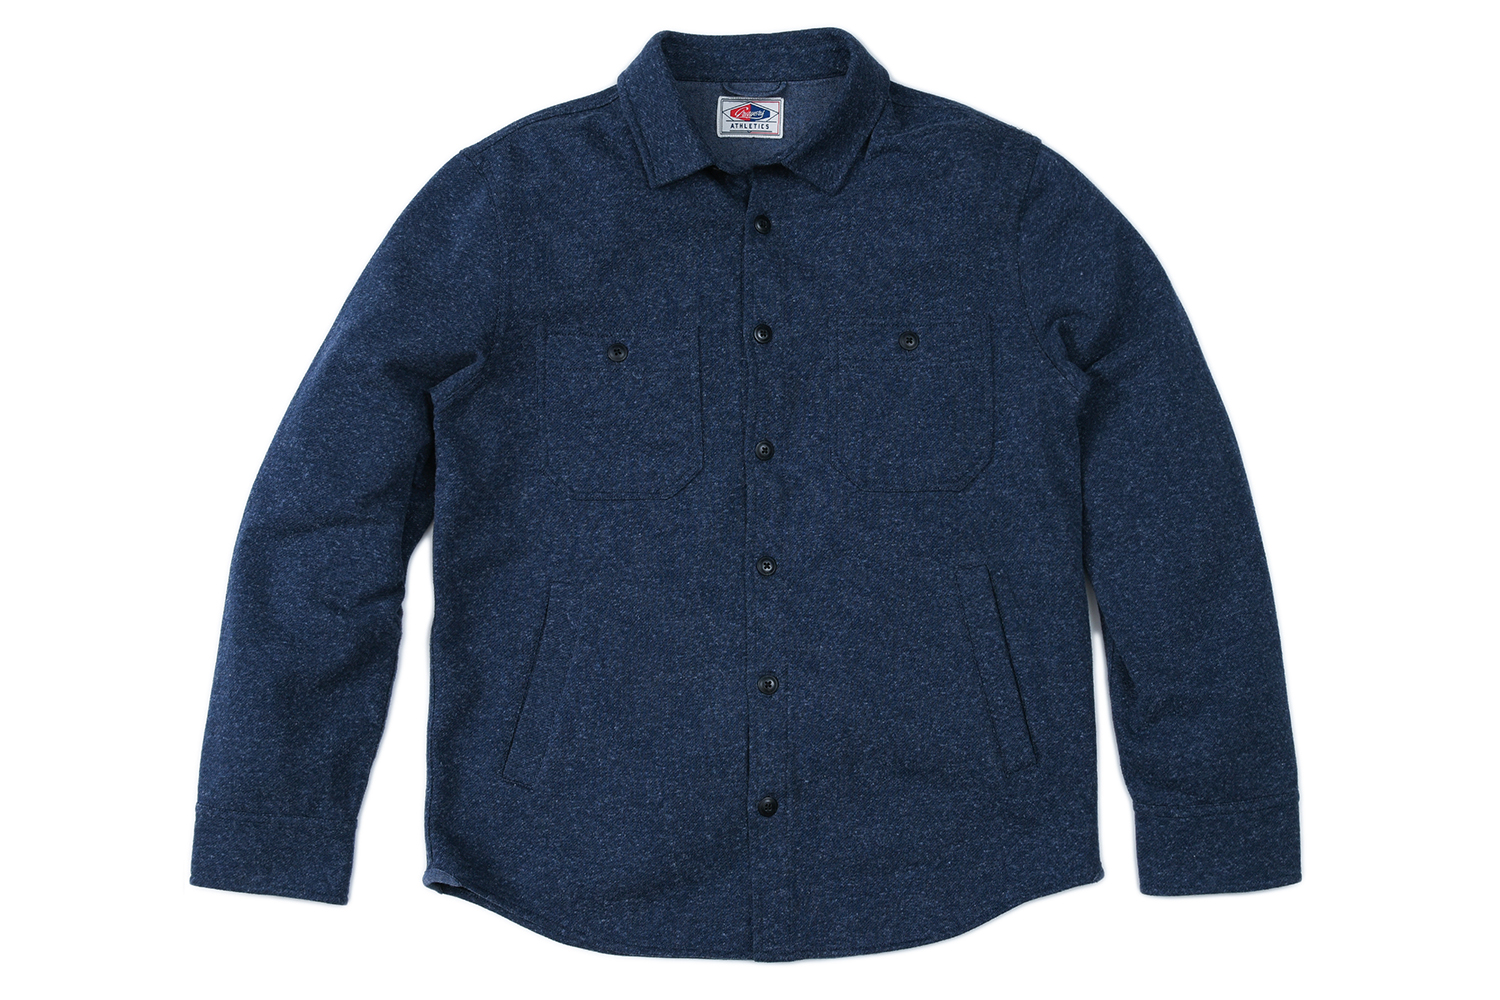 Grayers Bayswater Fleece CPO Shirt Jacket